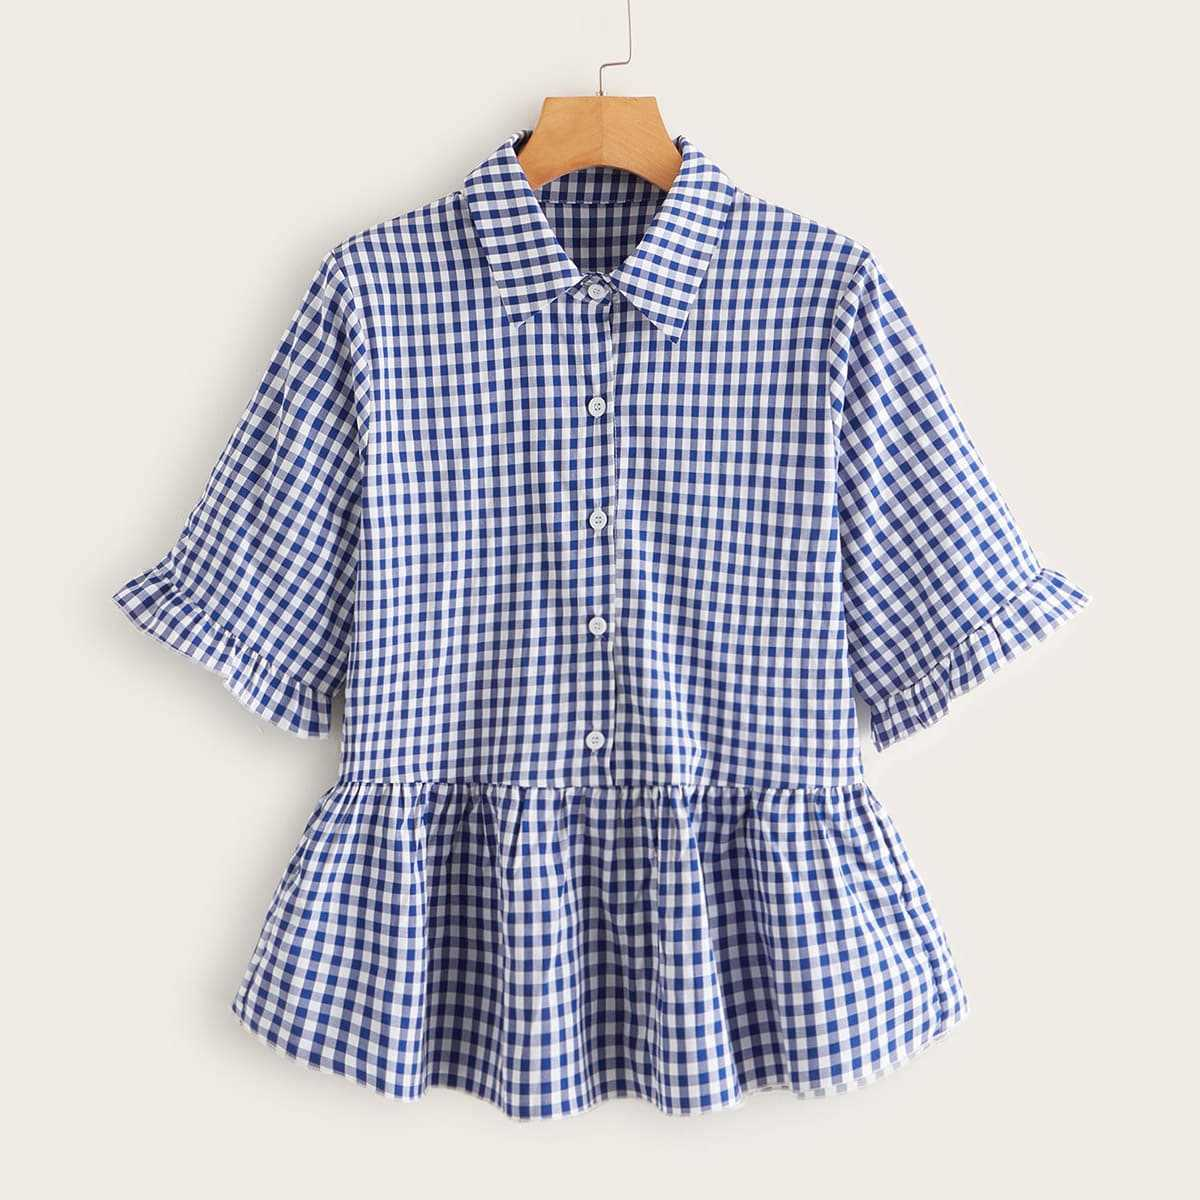 Gingham Ruffle Hem Smock Blouse in Blue by ROMWE on GOOFASH